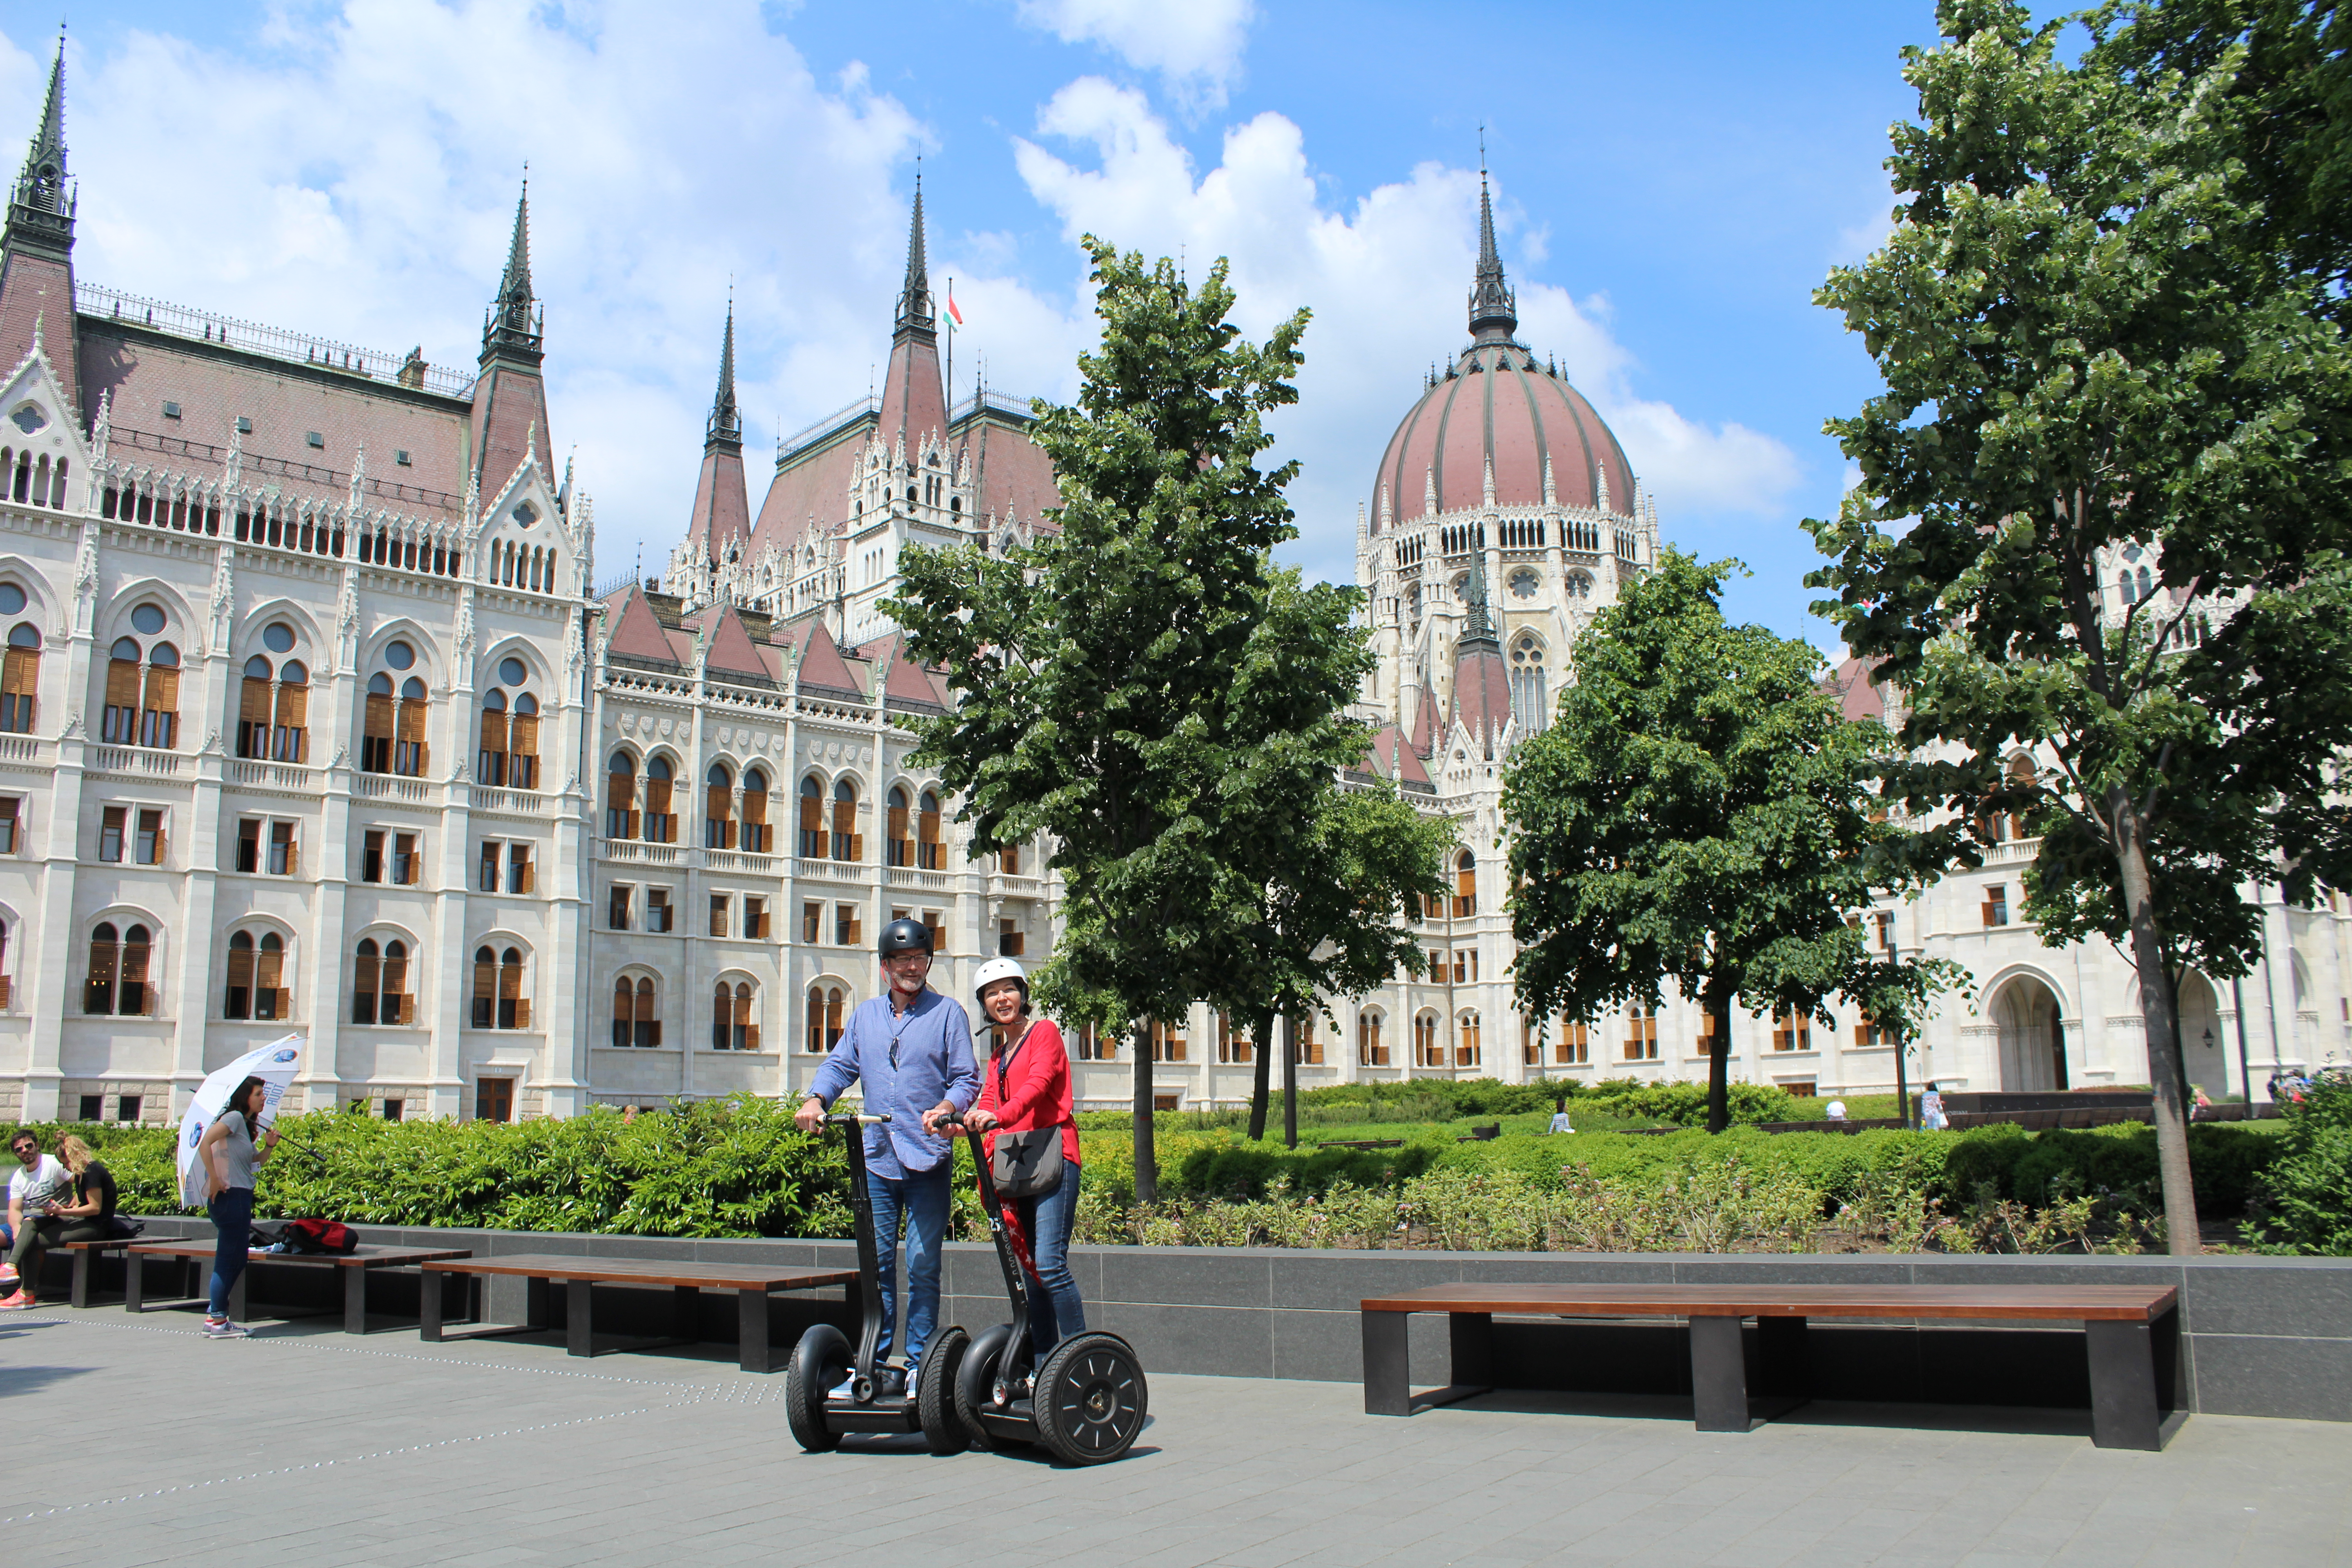 Segway Fun Tour Parliament